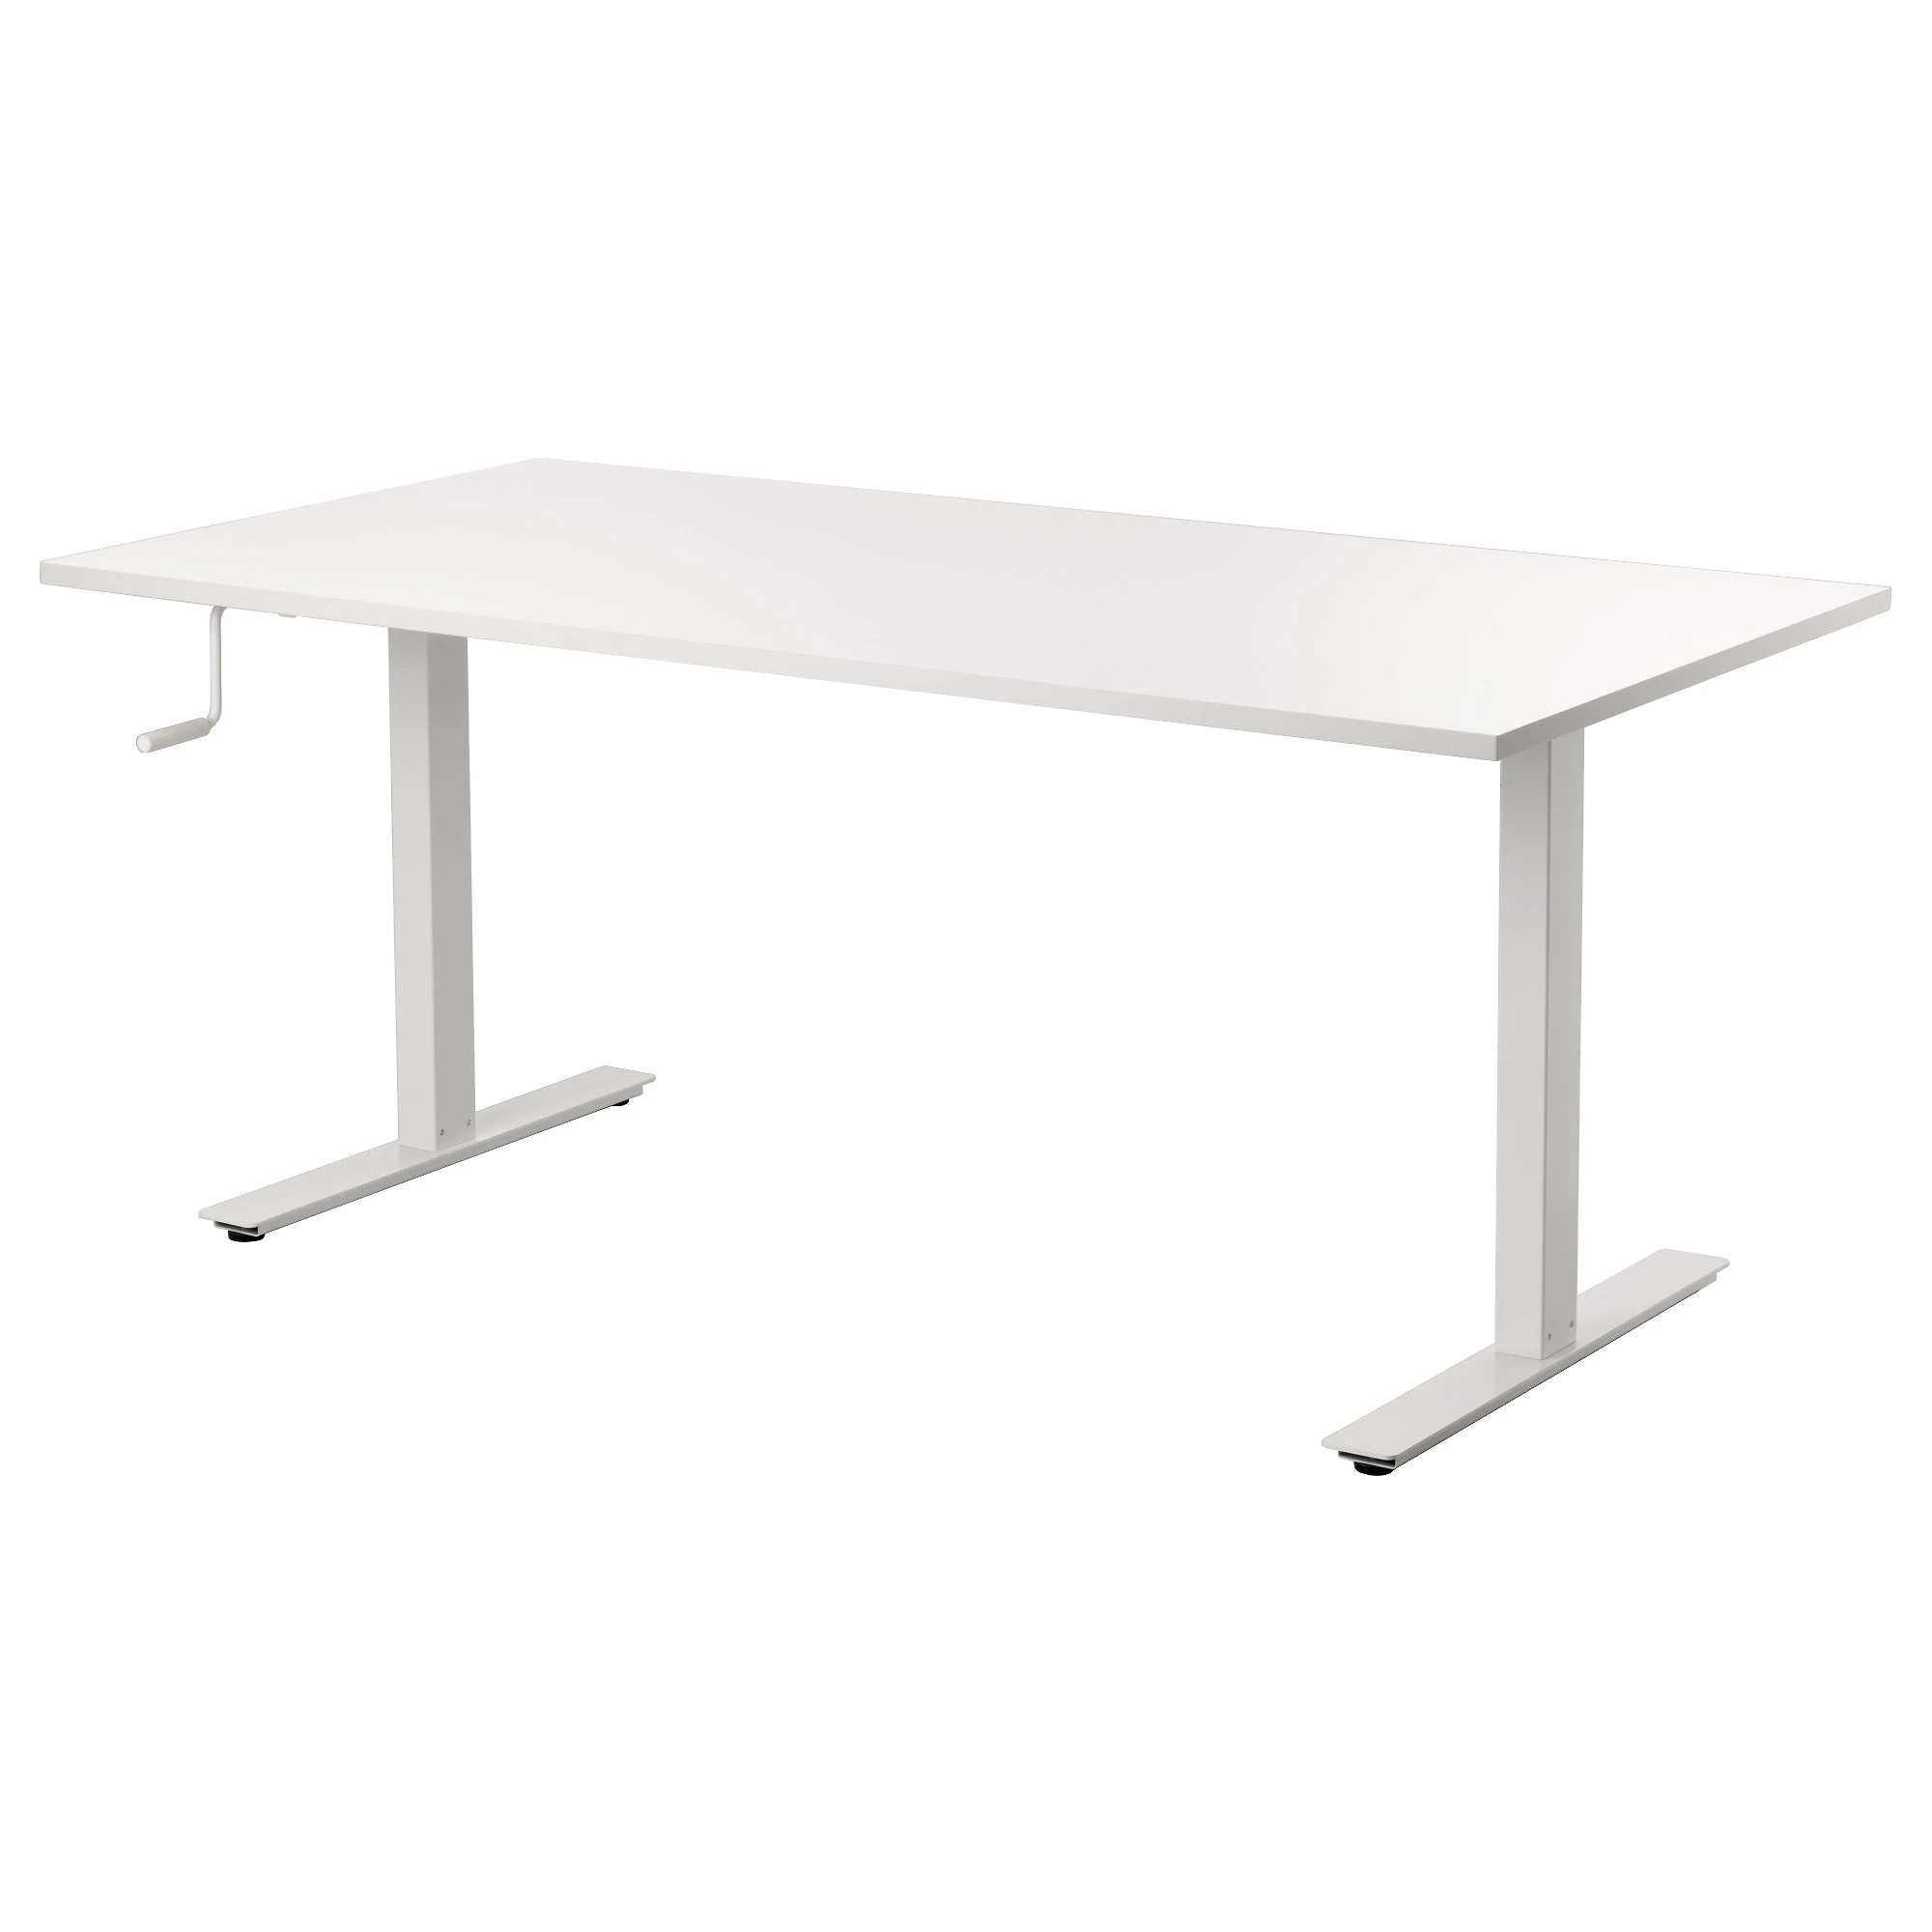 Bus Ikea Toulouse Skarsta Desk Sit Stand White